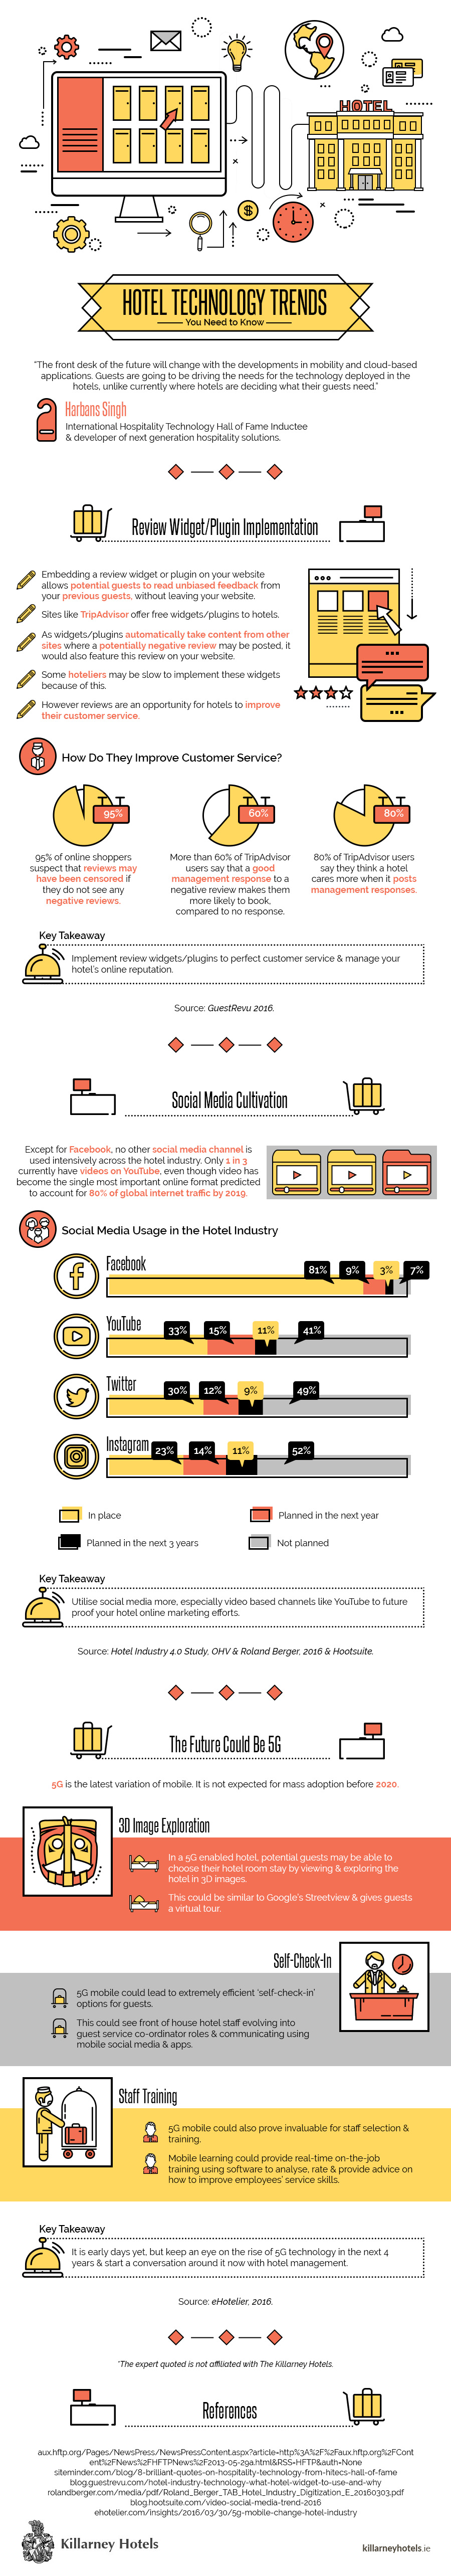 Killarney Hotels IG Hotel Technology Trends-Infographic